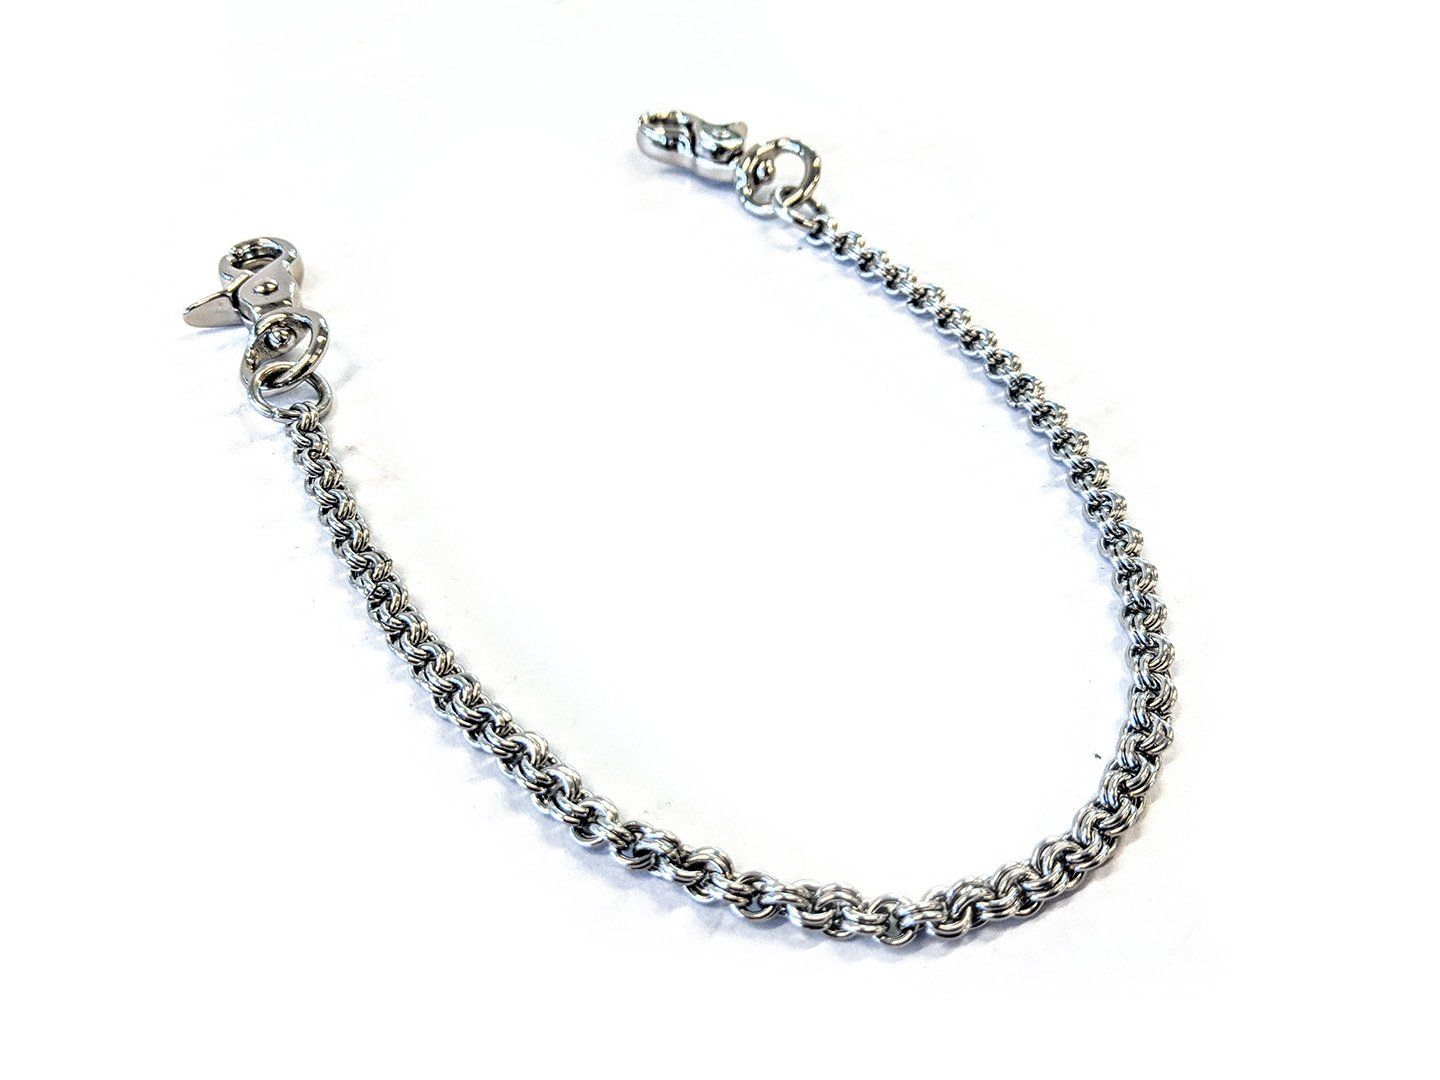 13 Inch Anvil Wallet Chain - Slim 2 In 2 Chain